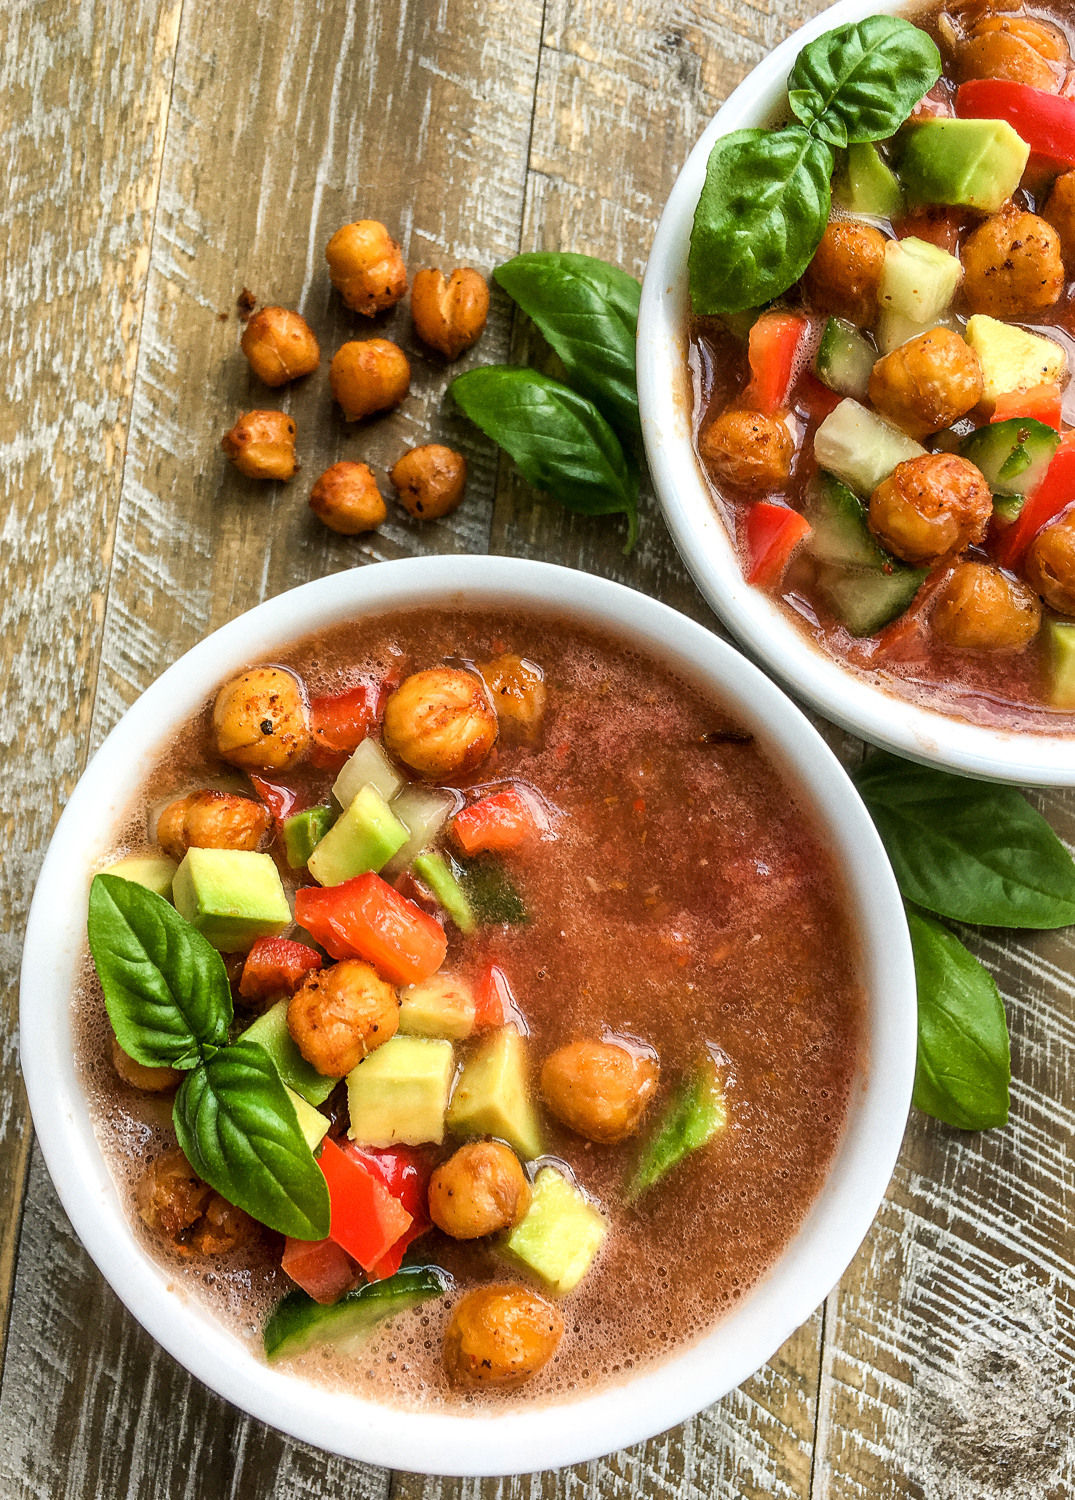 Gazpacho with Chickpea Croutons